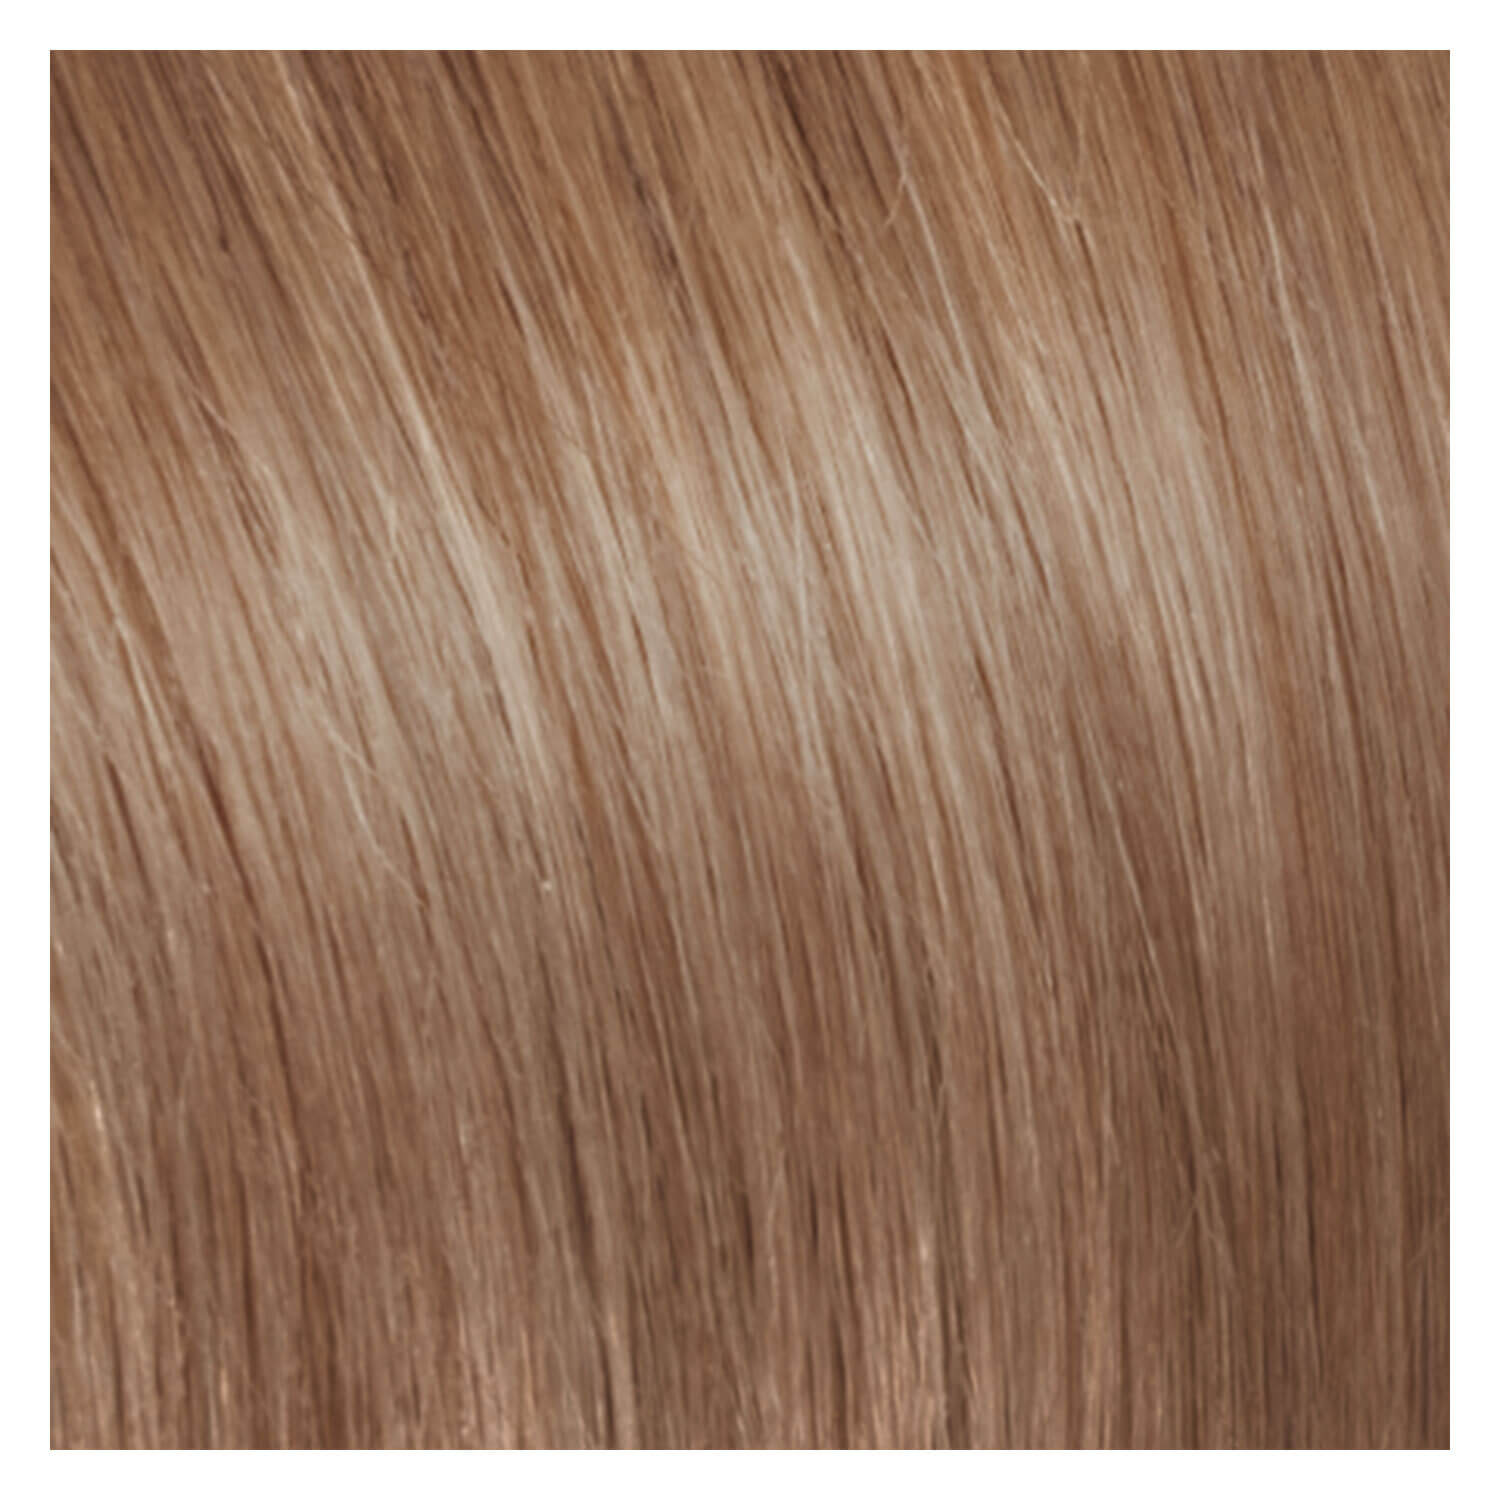 SHE Clip In-System Hair Extensions - 27 Mittel Goldblond 50/55cm